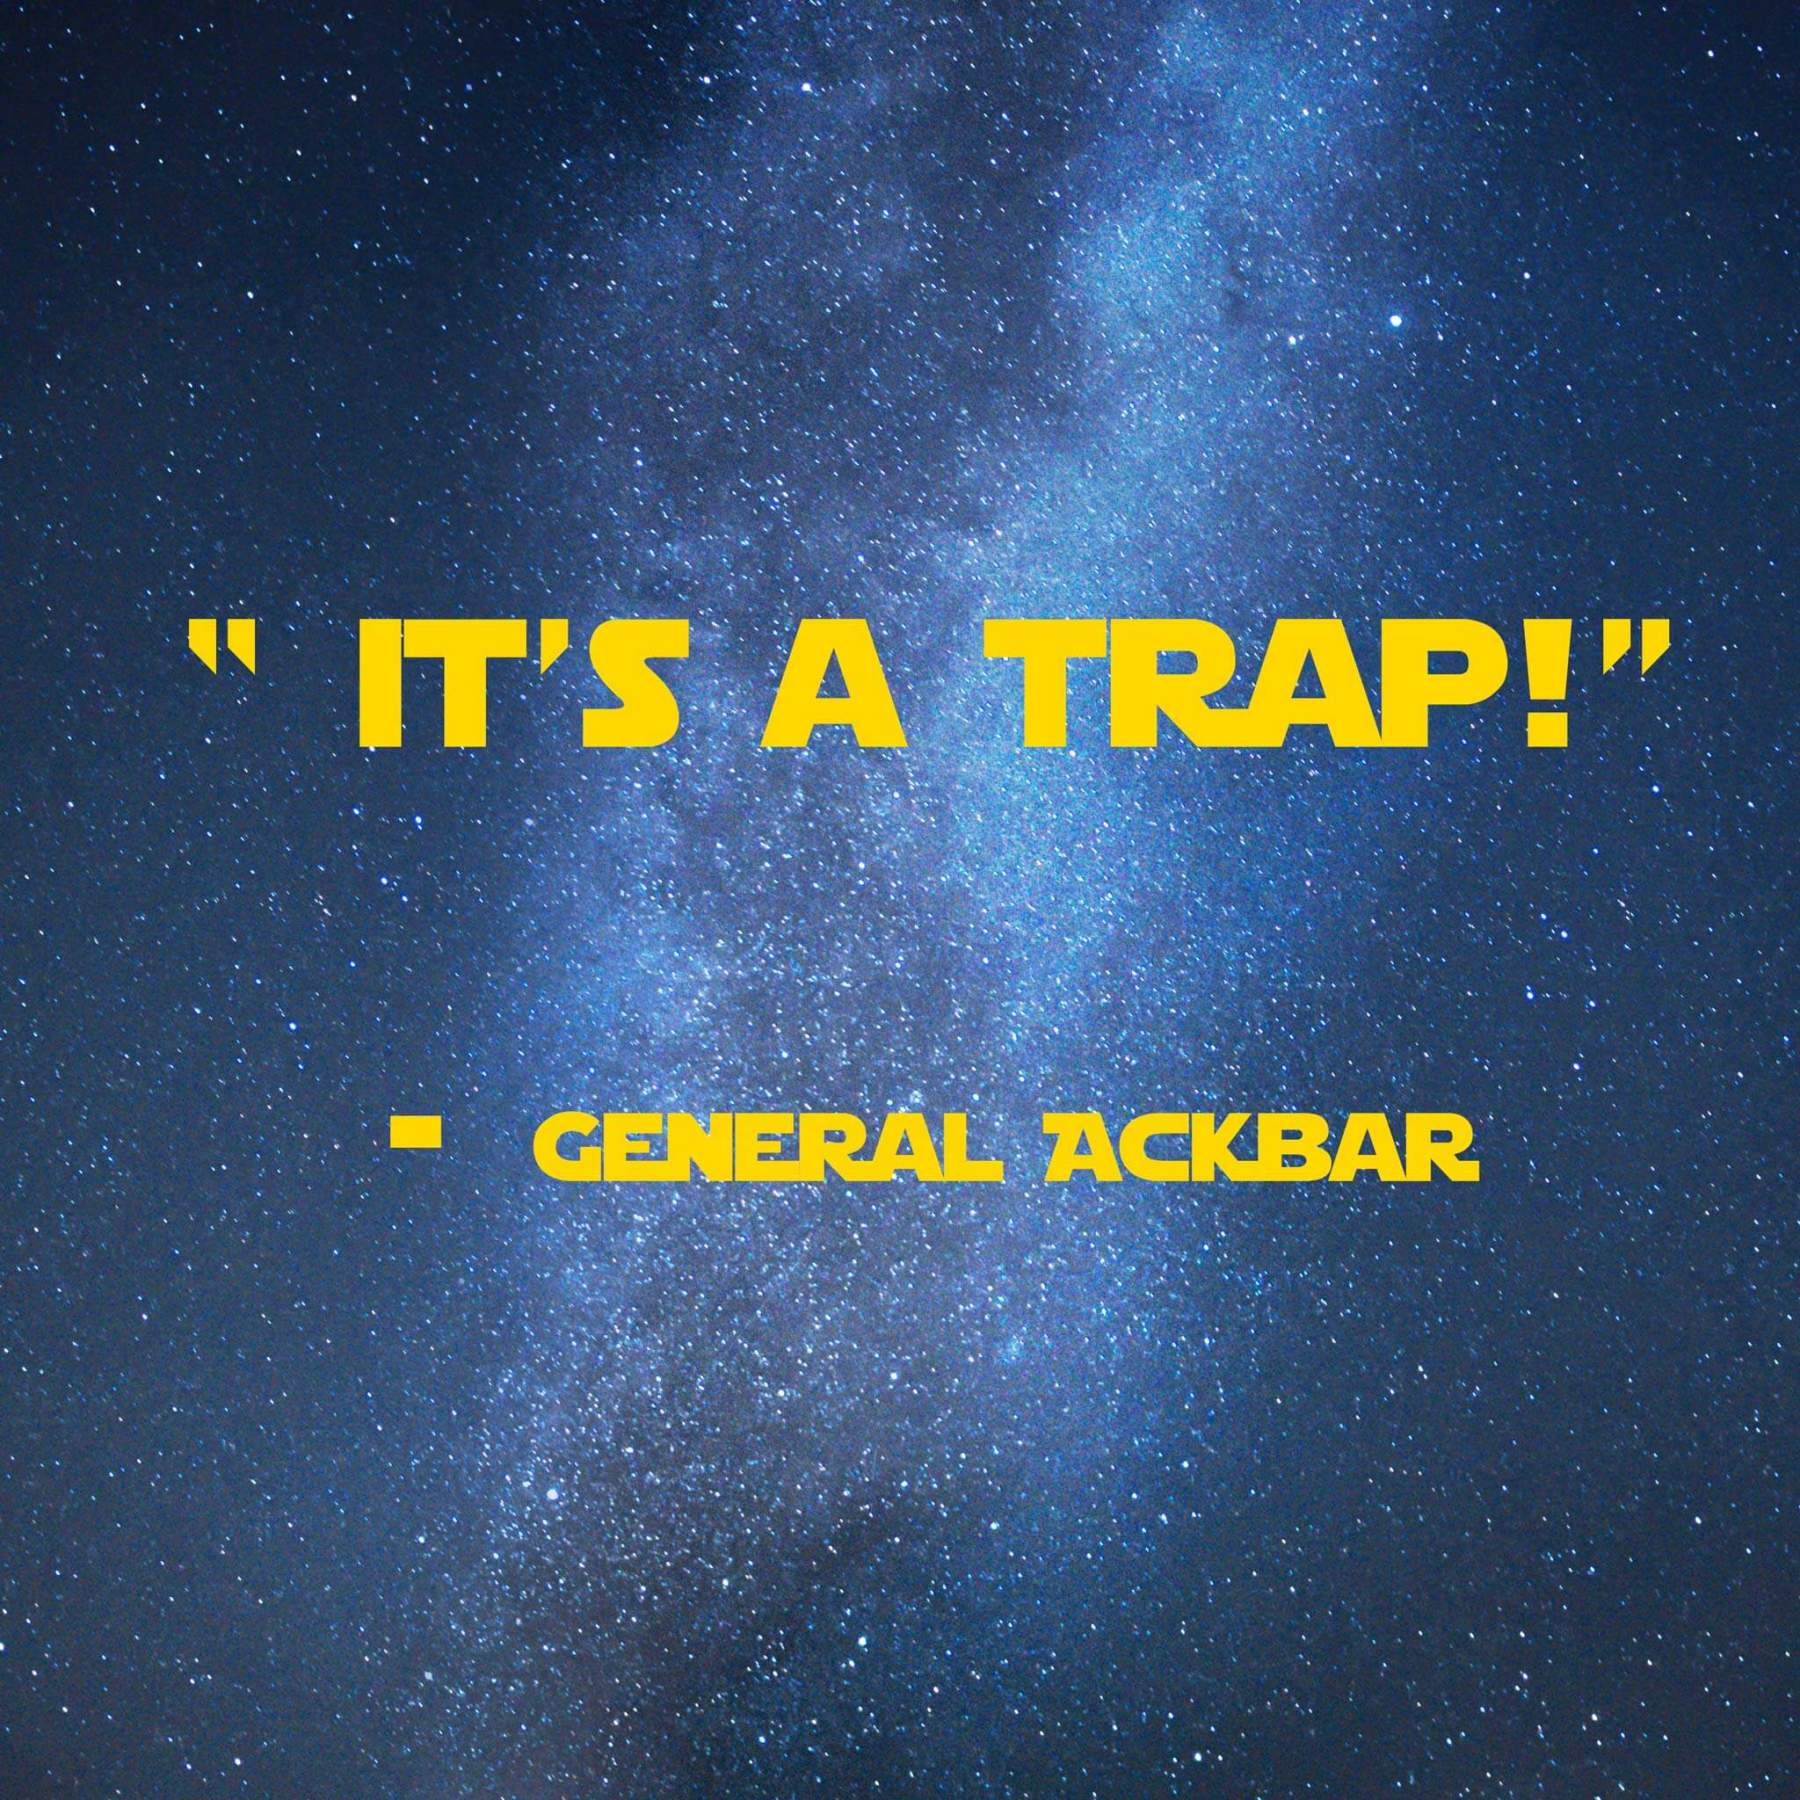 It's a Trap! | 31 Memorable Star Wars Quotes for Geeks